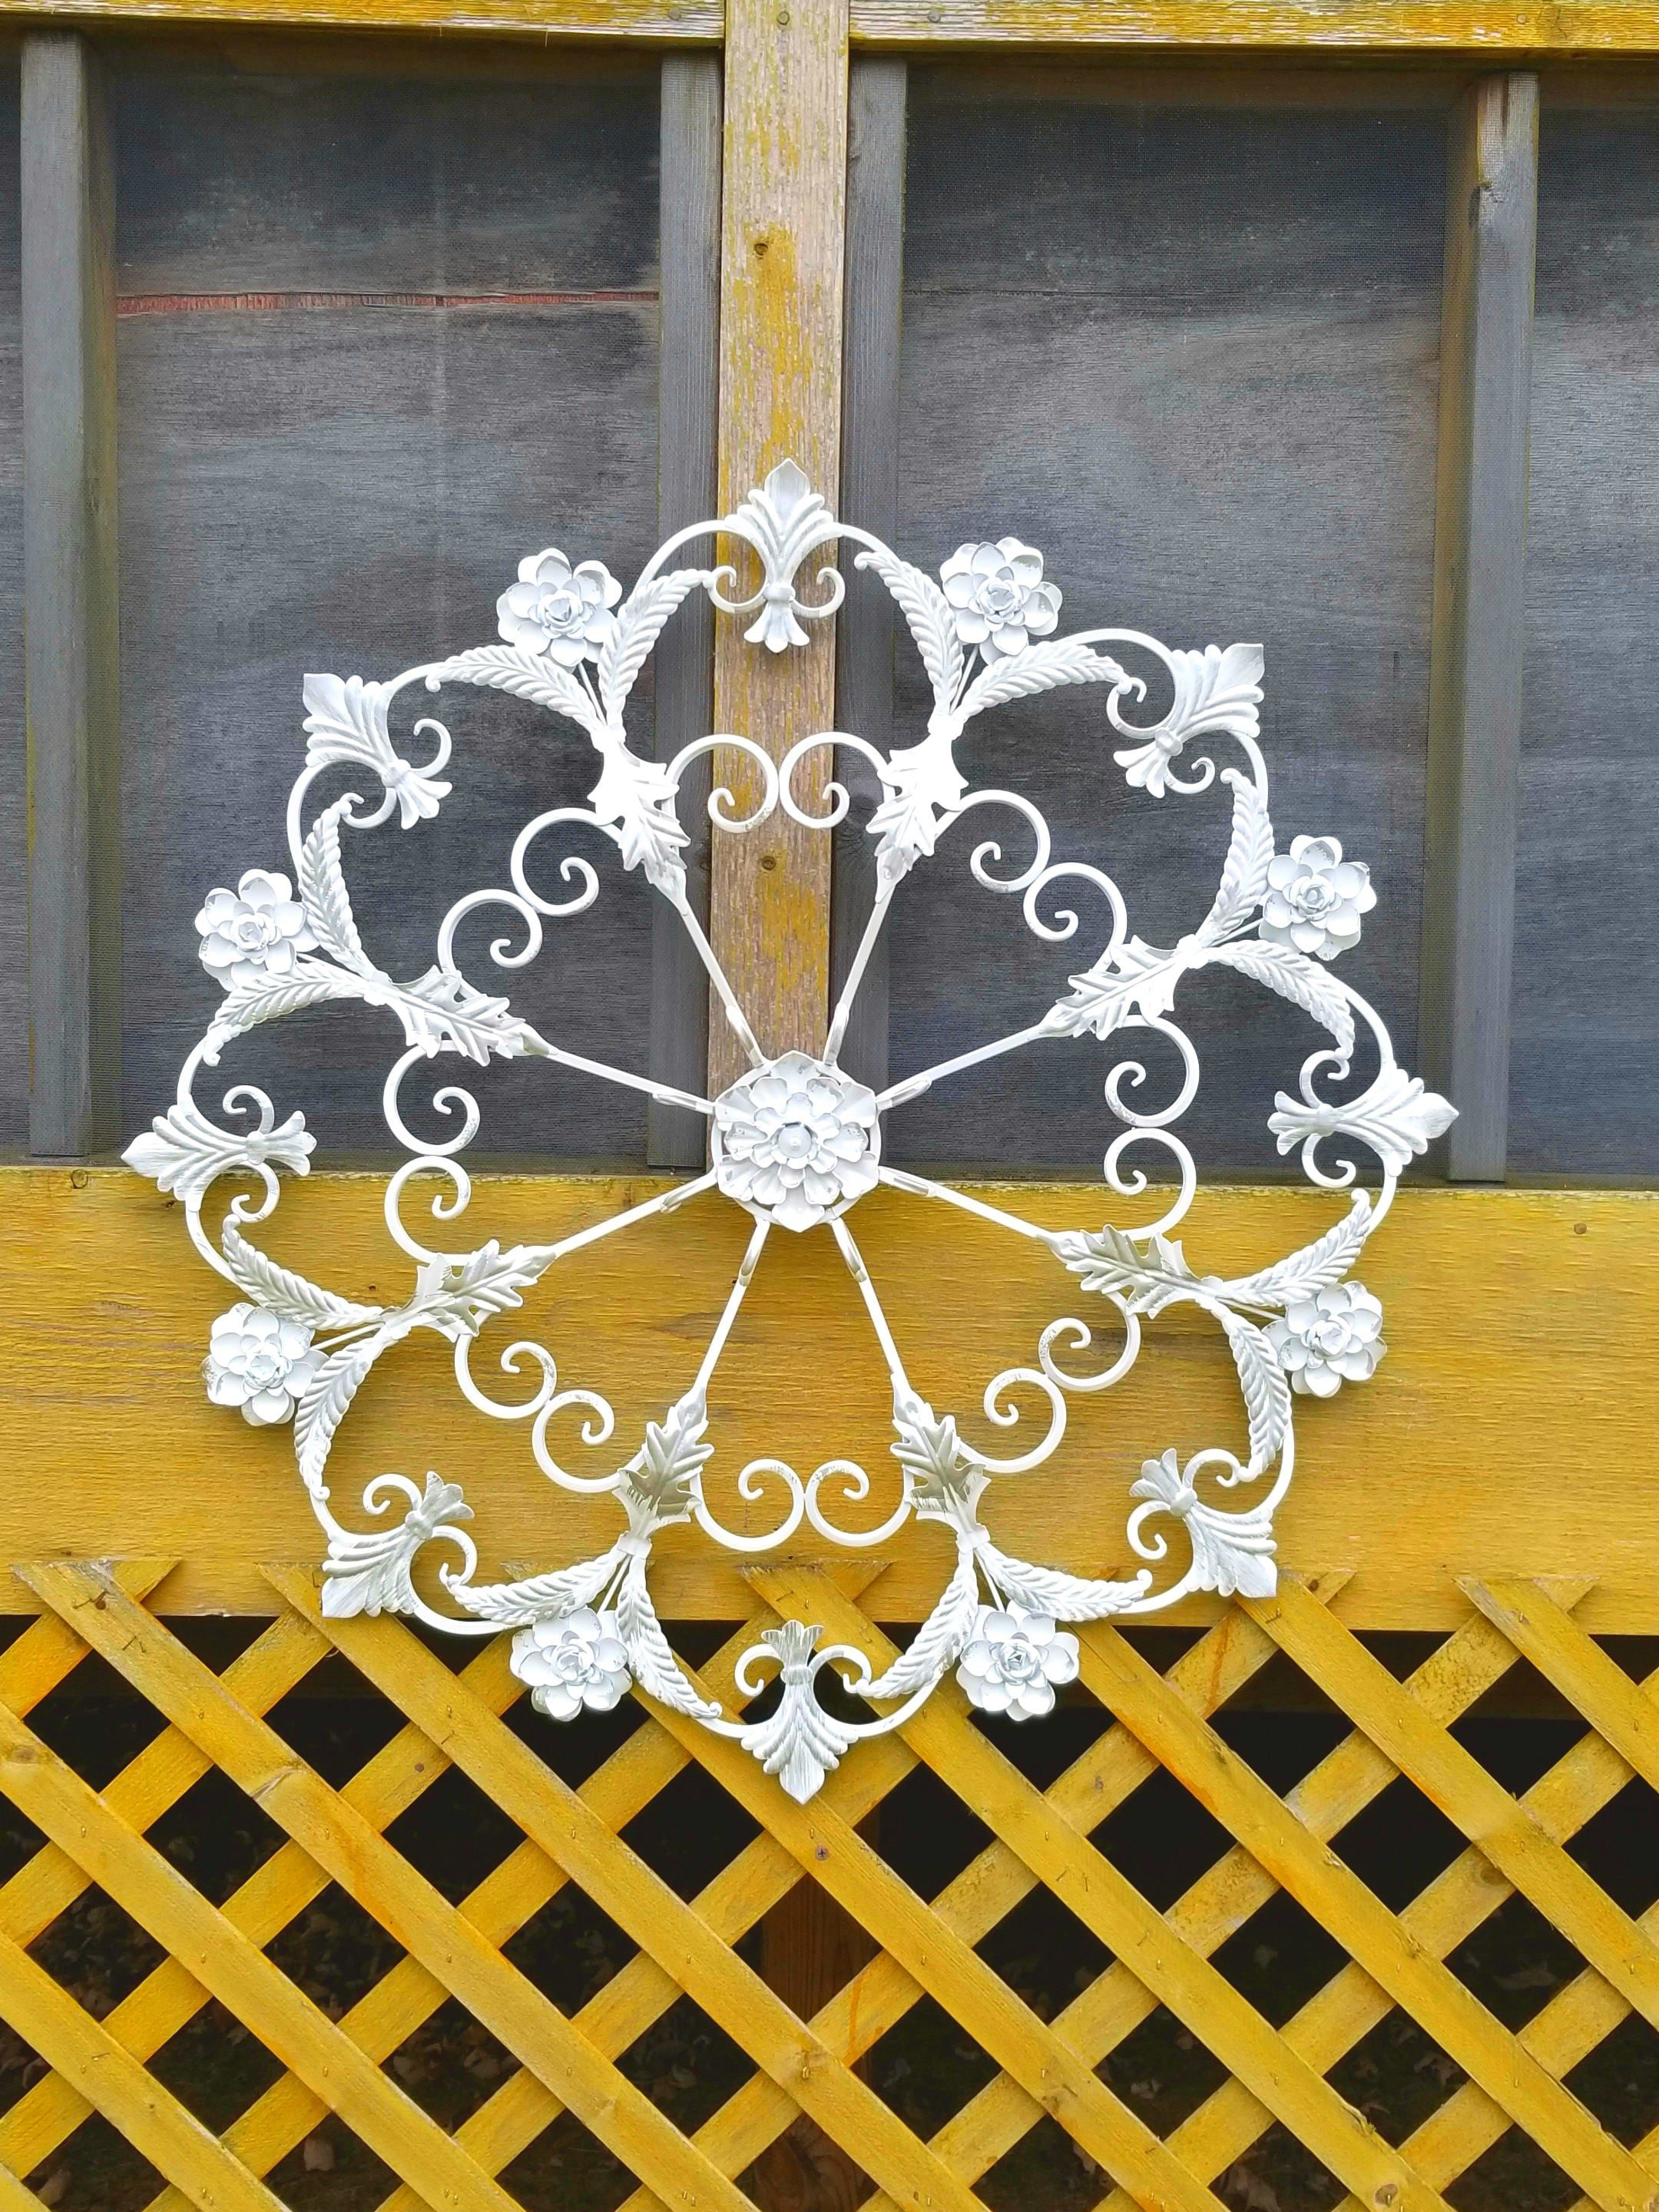 Large Distressed White and Silver Scrolled Metal Flower Wall